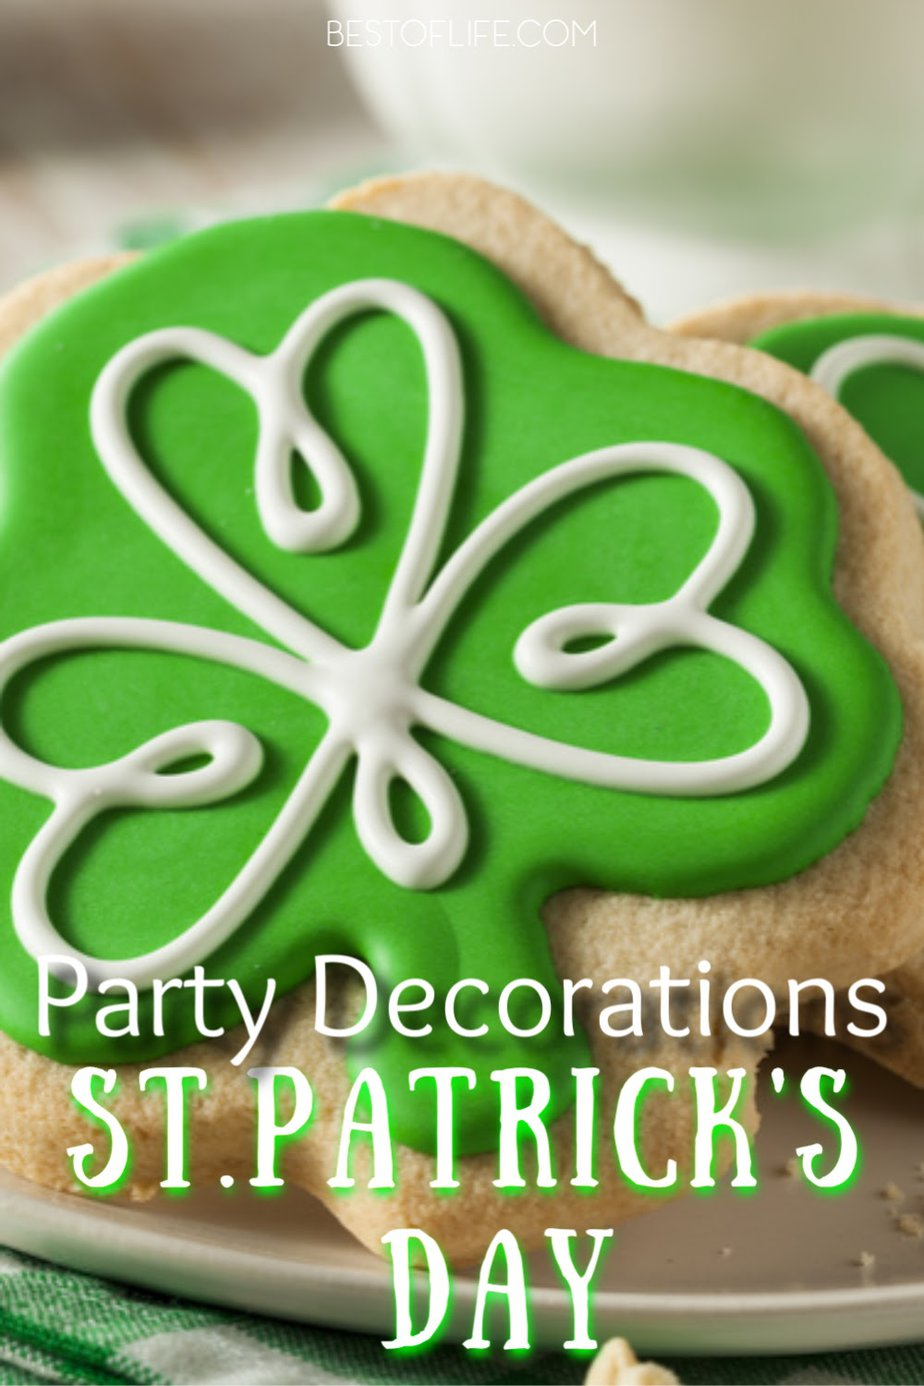 Host your very own Irish-themed party with fun and colorful St Patricks Day decorations that add some festive green to your St Patrick's Day party. St Patrick's Day Décor | St Patrick's Day Party Ideas | Party Décor | Outdoor Party Decorations | Party Planning Tips #stpatricksday #party via @thebestoflife